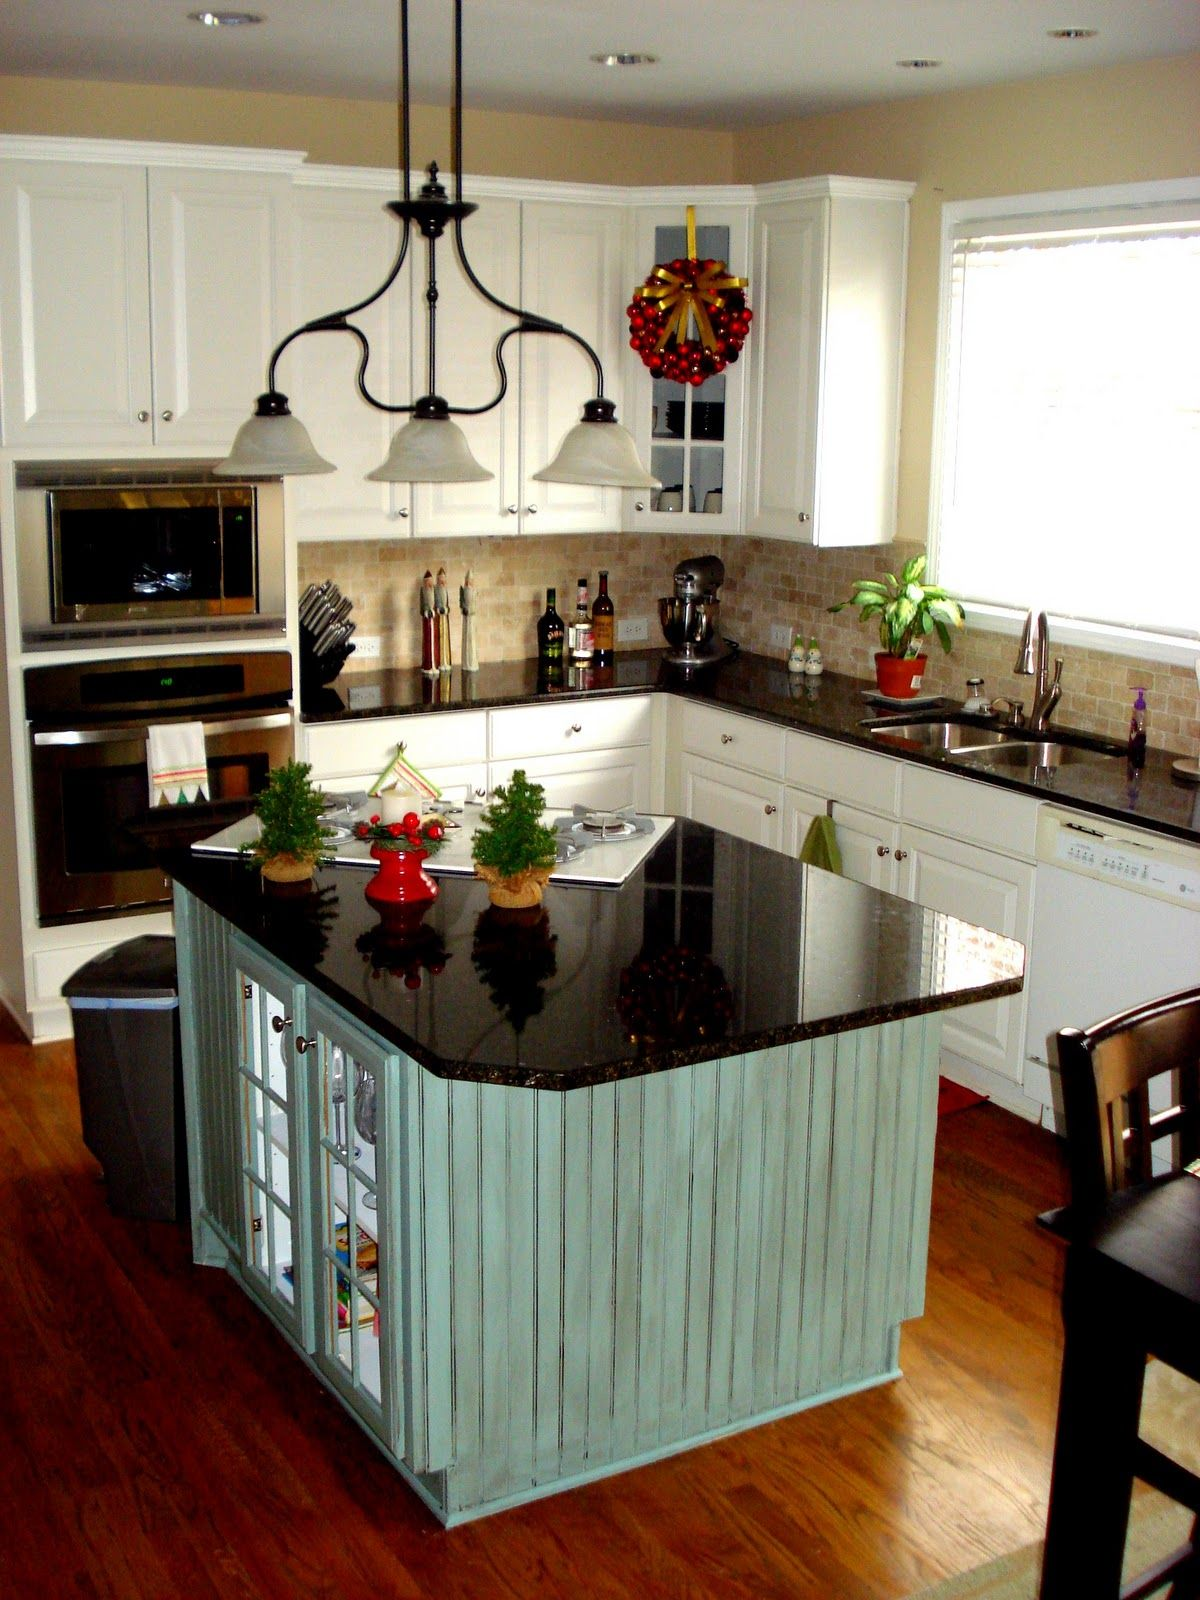 Ideas For Kitchen Islands In Small Kitchens 51 Small Kitchen With Islands Designs Kitchen Designs Kitchen